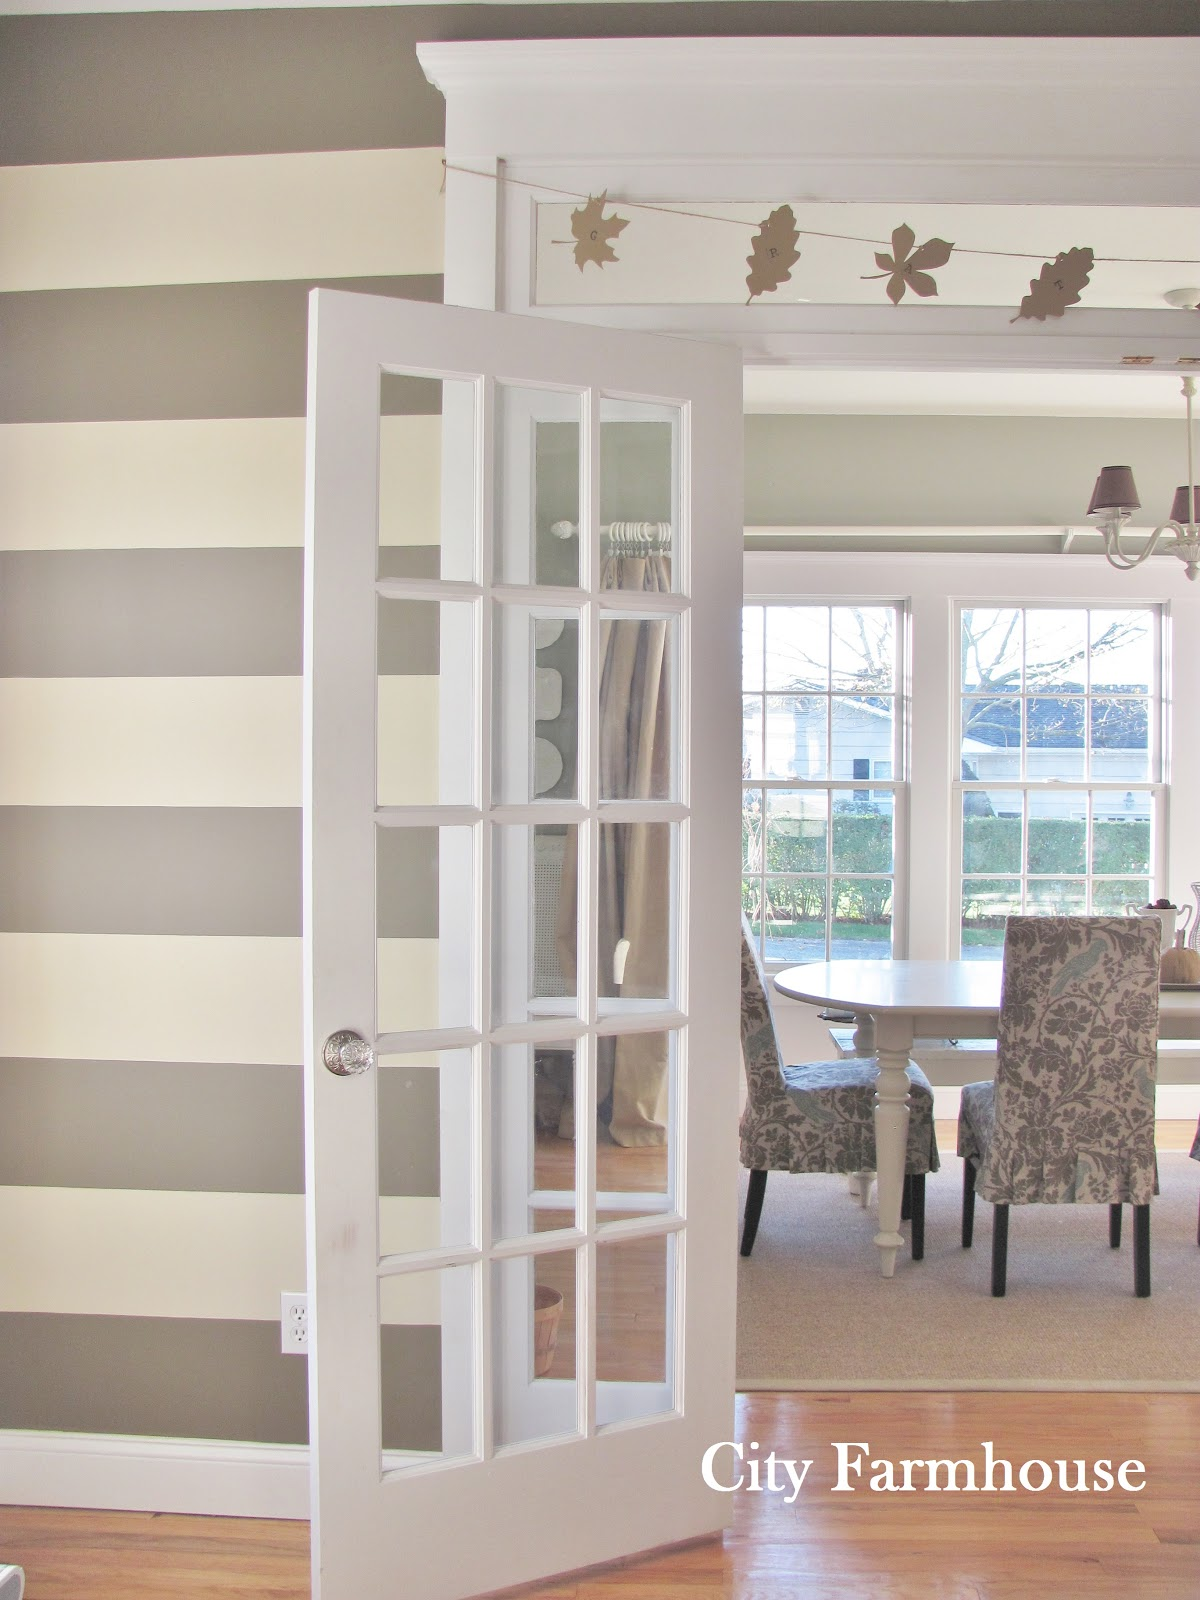 Contact Paper Wall Stripes City Farmhouse